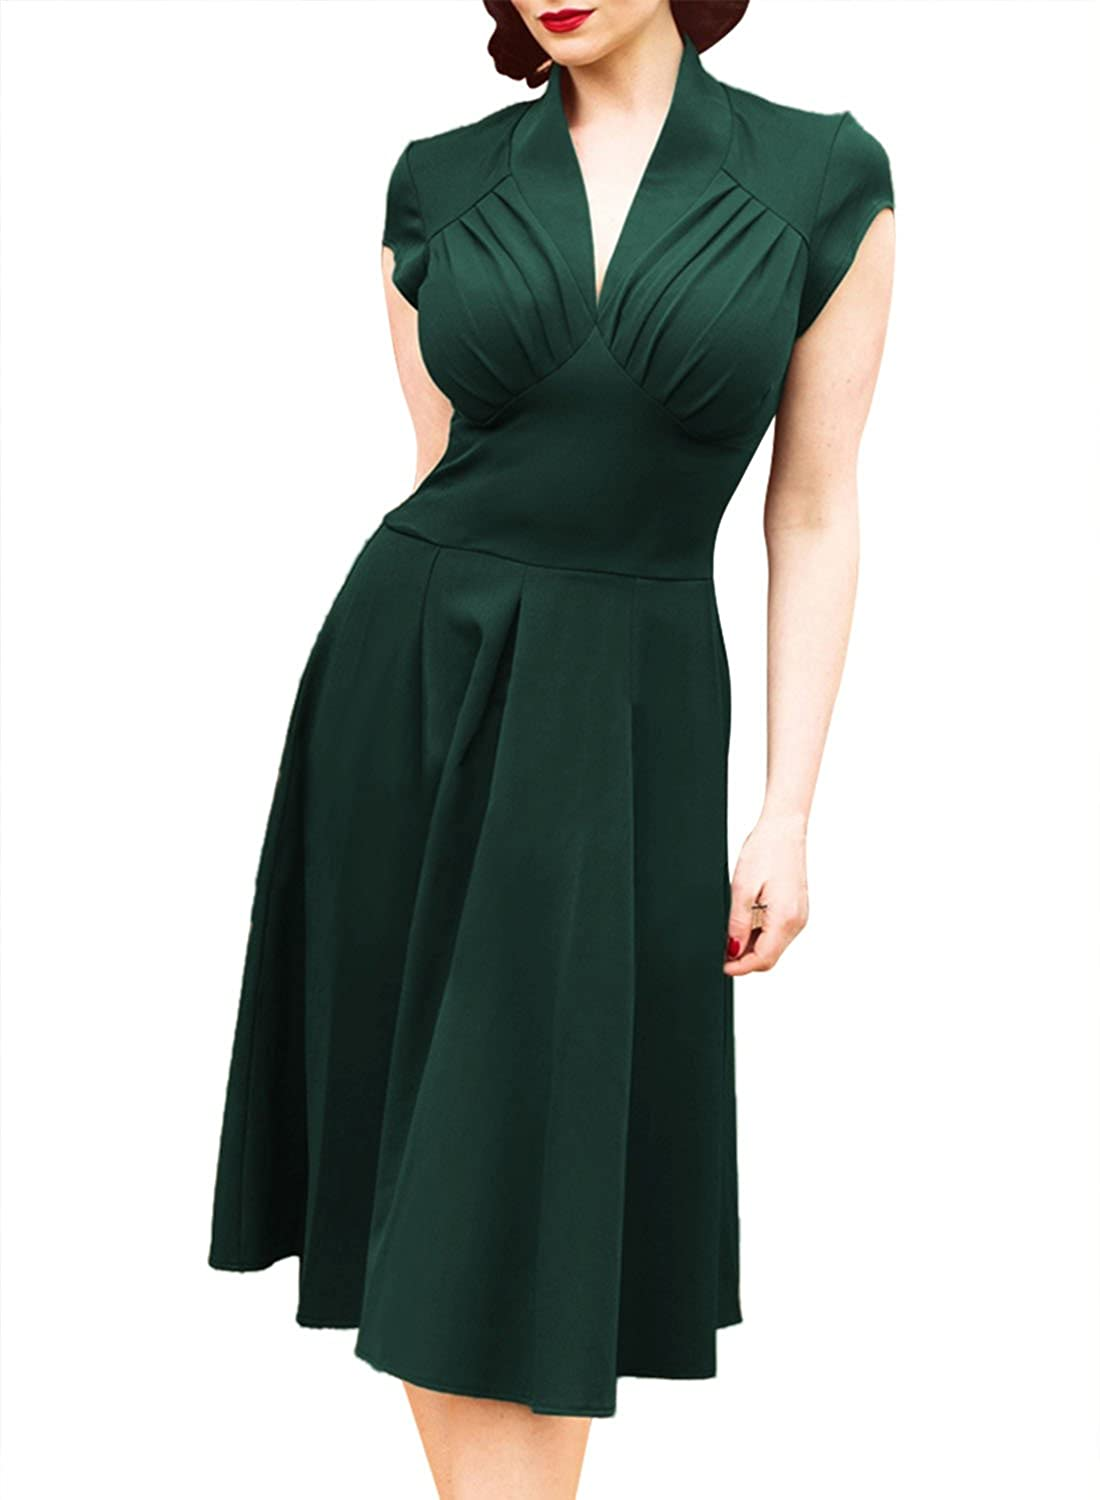 1950s Dresses, 50s Dresses | 1950s Style Dresses Sweetmeet Womens 1940s Vintage Rockabilly Ball Gown Flared Dress Swing Skaters £25.99 AT vintagedancer.com